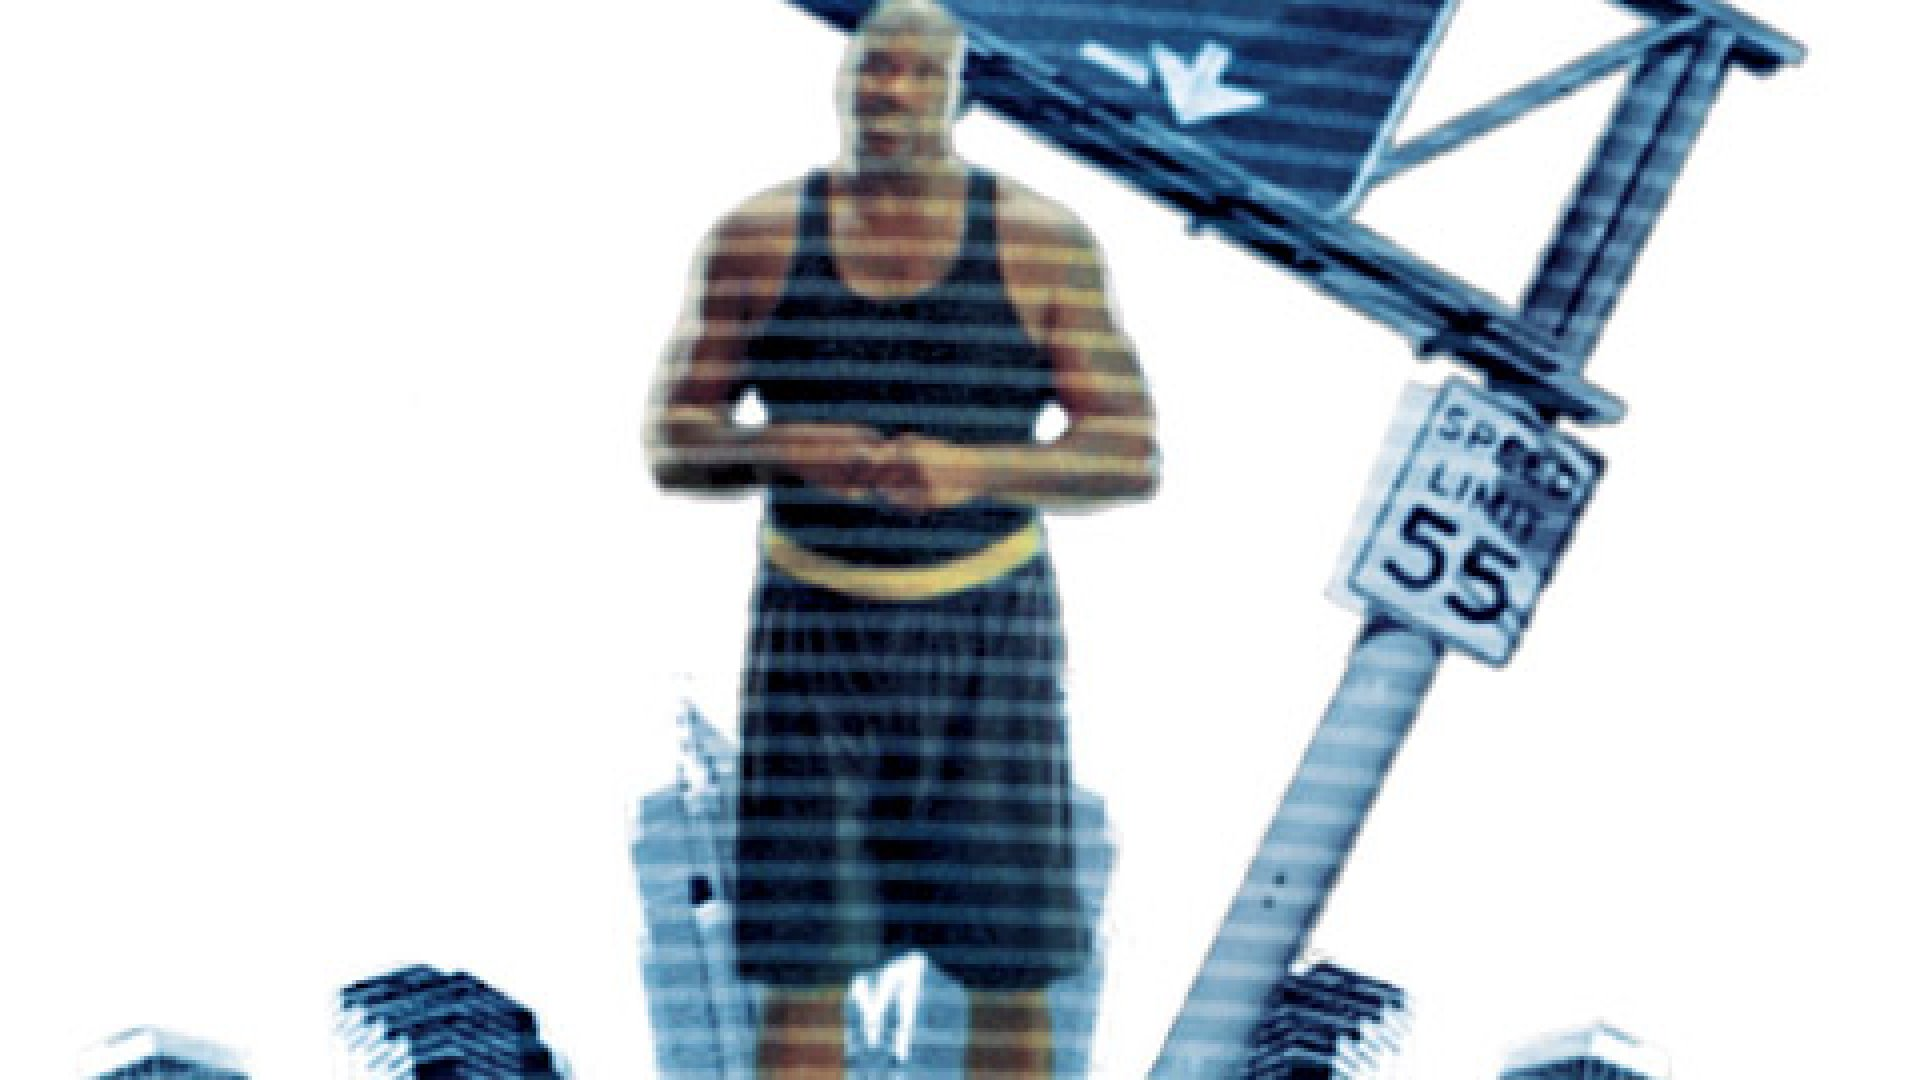 <strong>Shaq Attack</strong> When a Muscle Milk bottle is held in front of a webcam, Shaquille O'Neal appears to pop out.